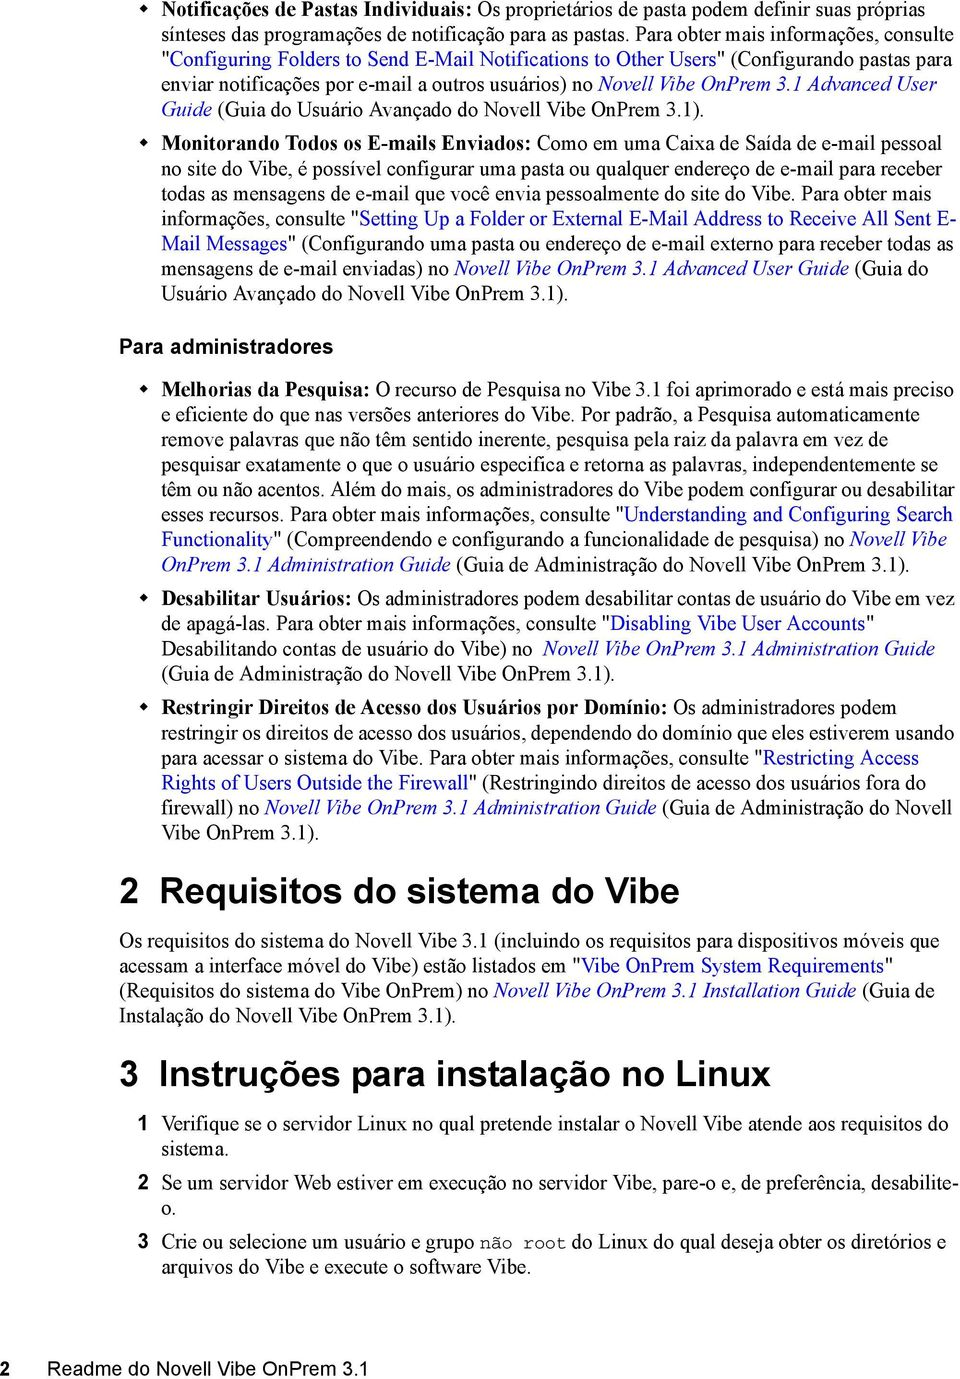 OnPrem 3.1 Advanced User Guide (Guia do Usuário Avançado do Novell Vibe OnPrem 3.1).